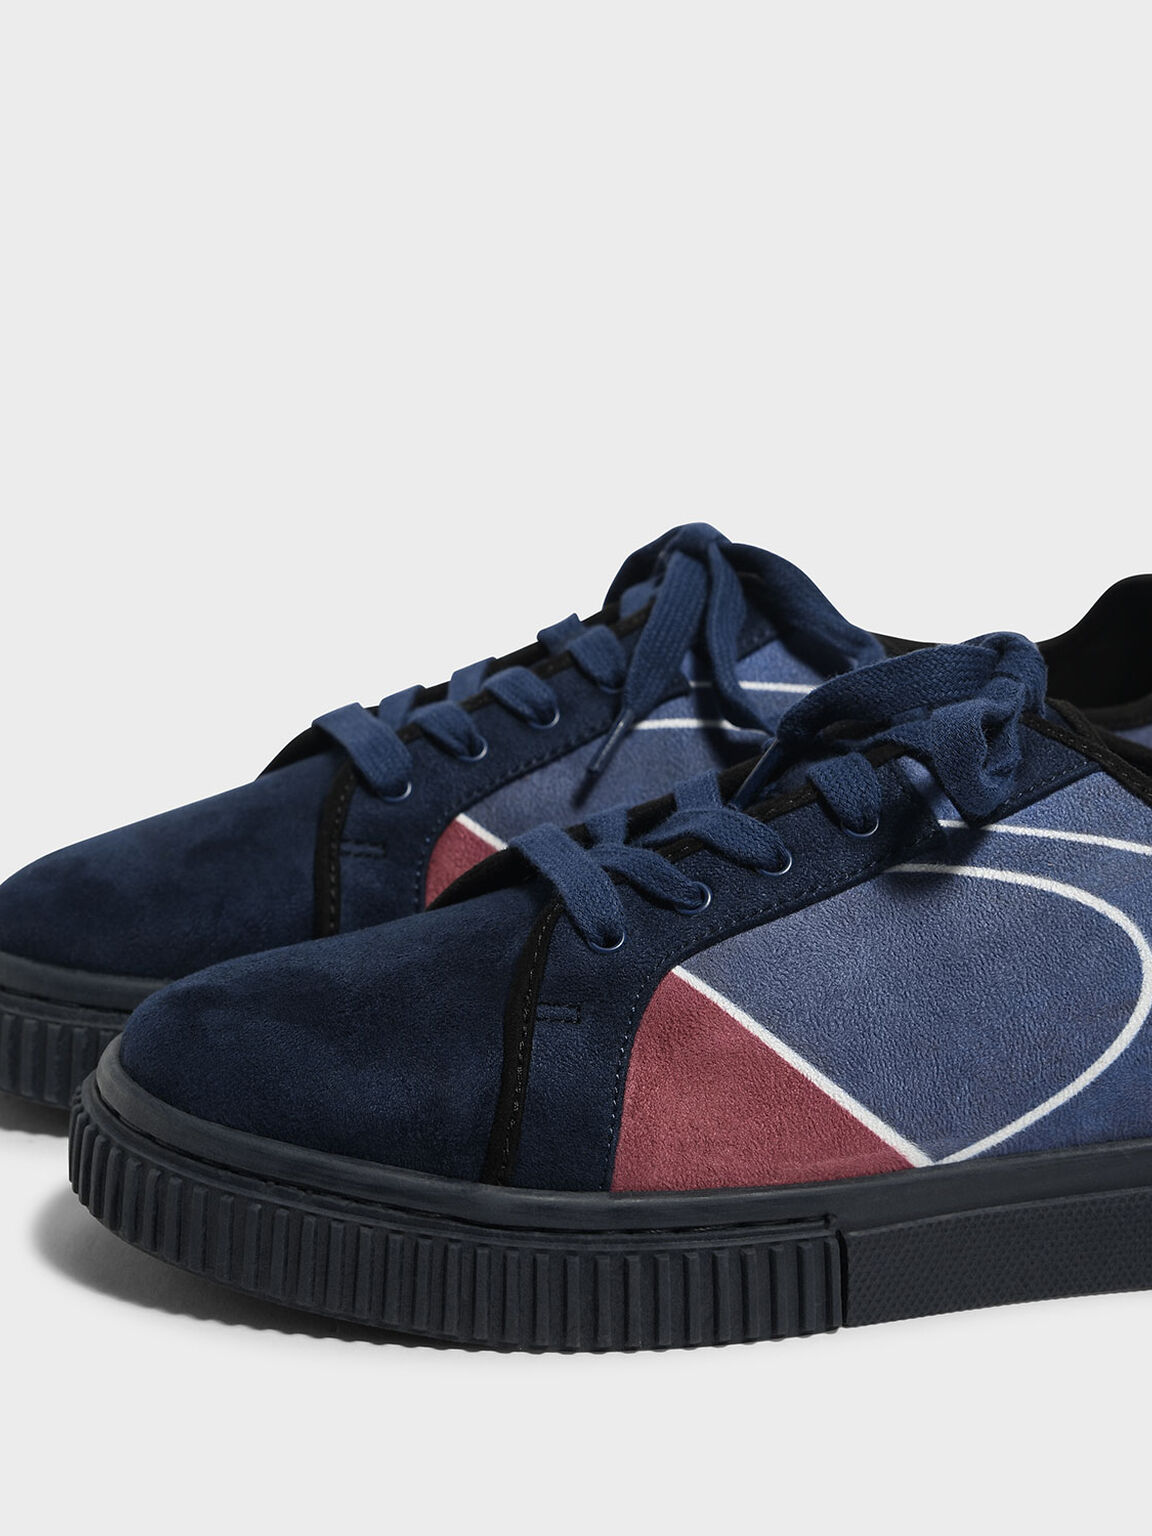 Classic Lace Up Sneakers, Dark Blue, hi-res